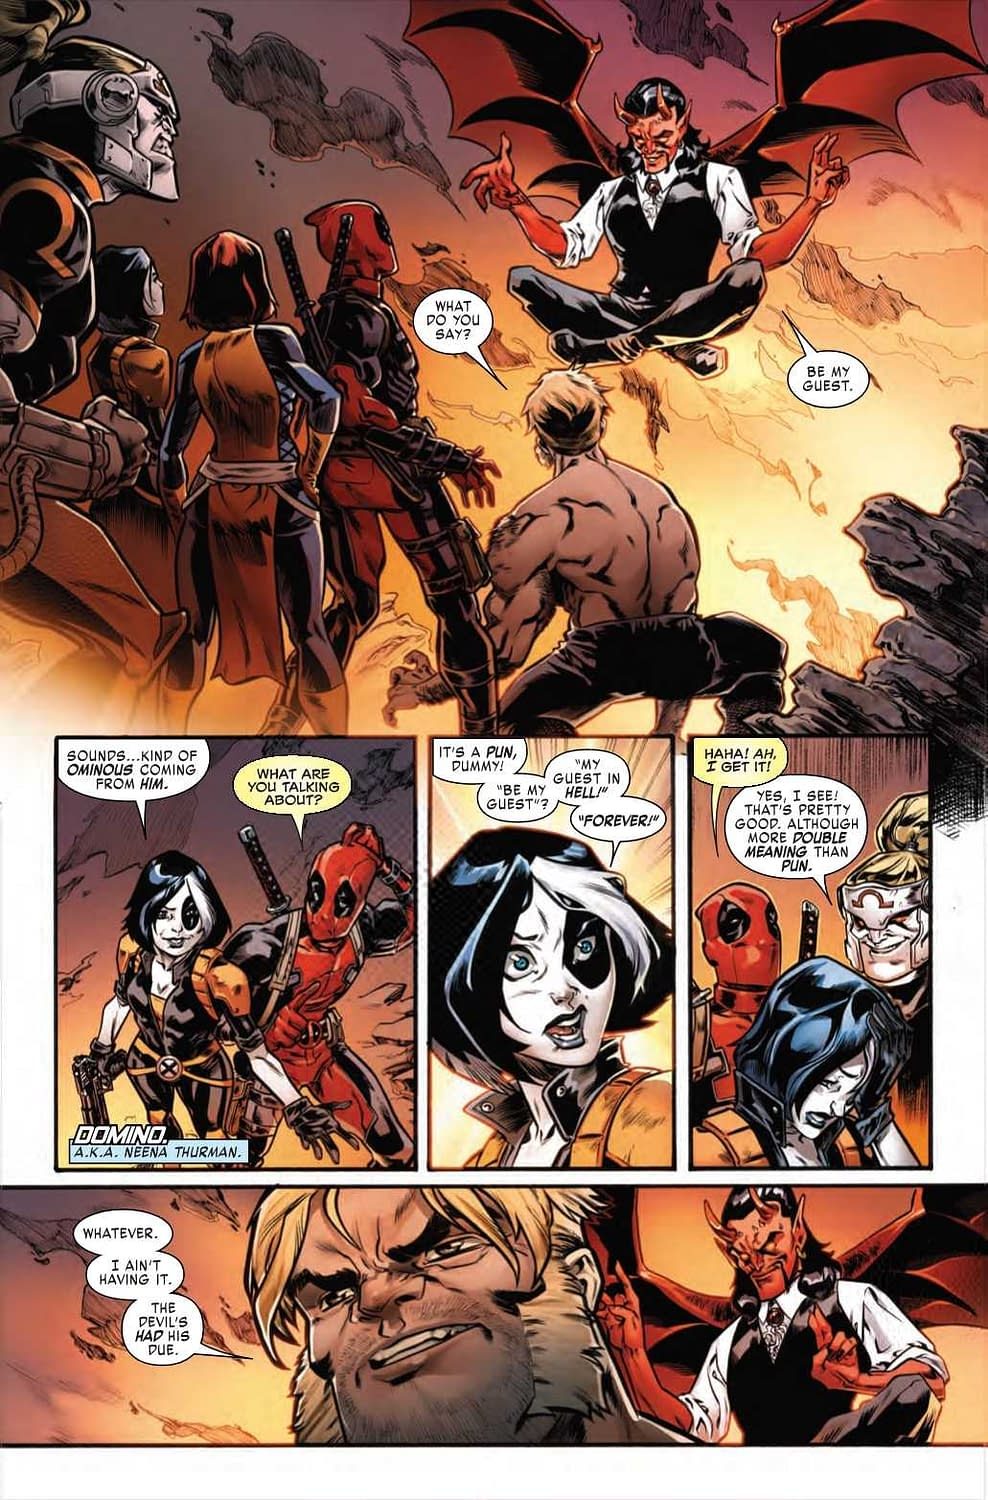 Domino Explains the Joke in Next Week's Weapon X #27